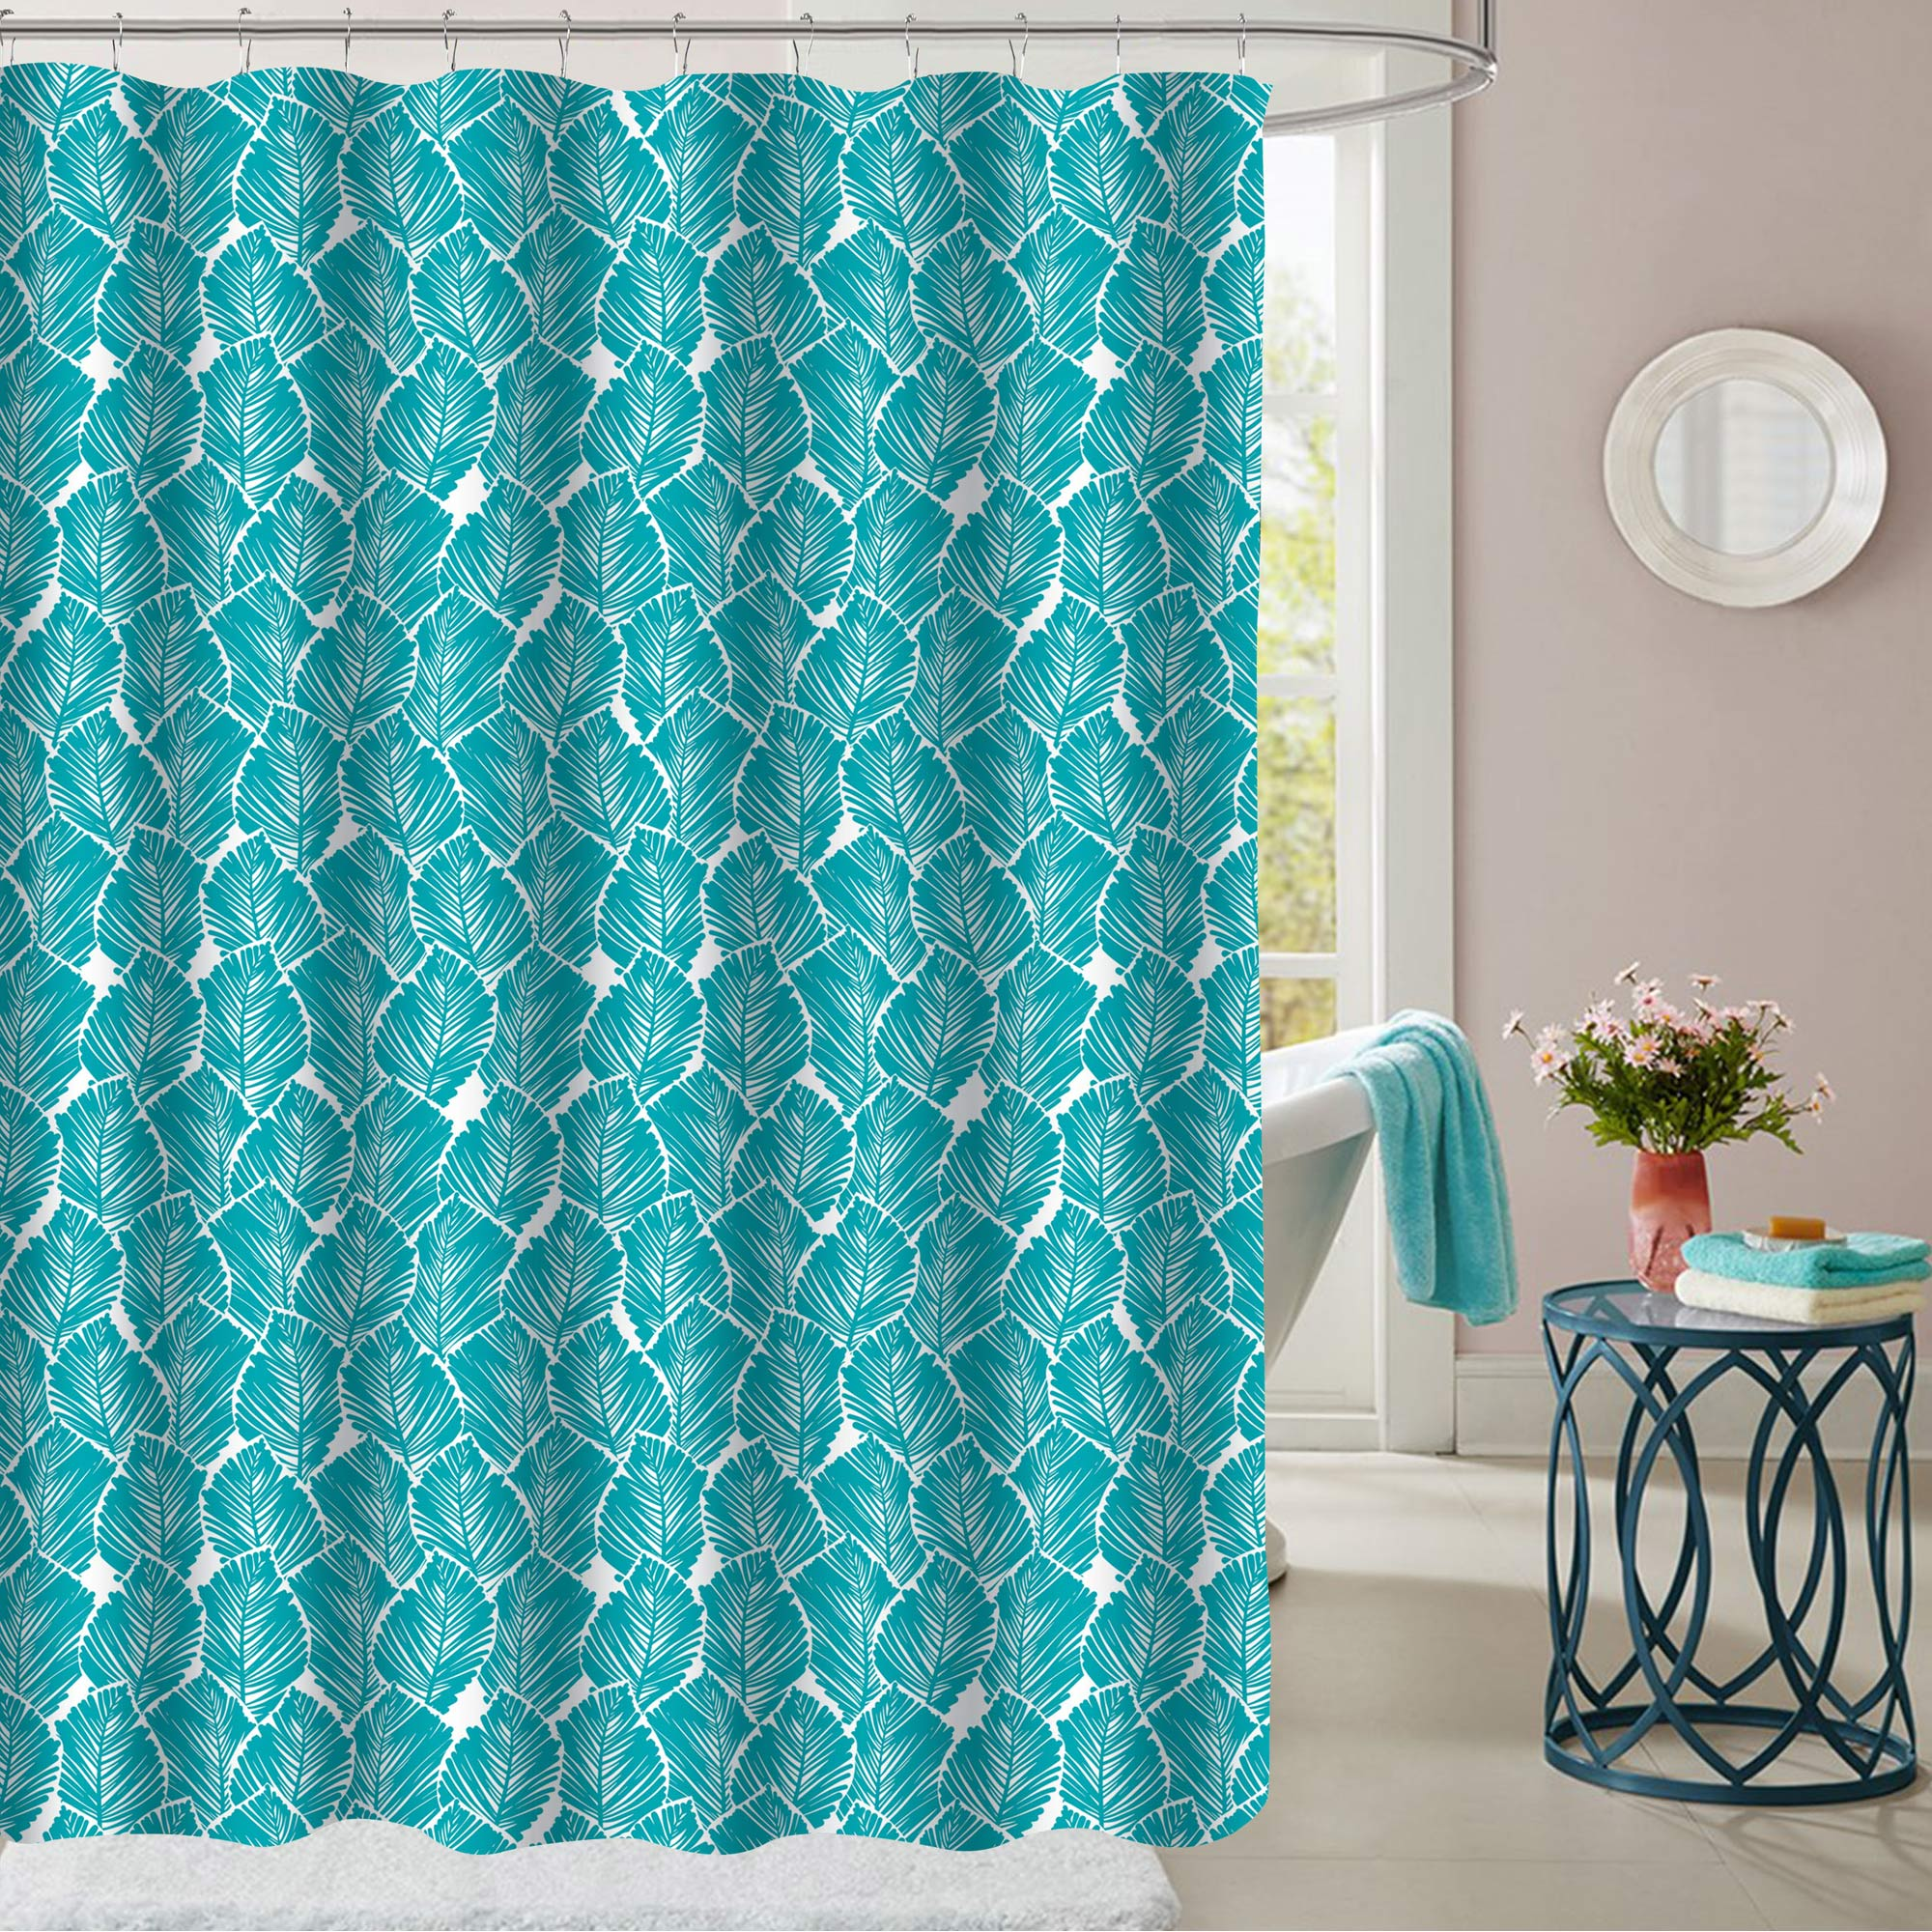 Details About Tropical Leaf Pattern Teal Fabric Bathroom Shower Curtain 70 X72